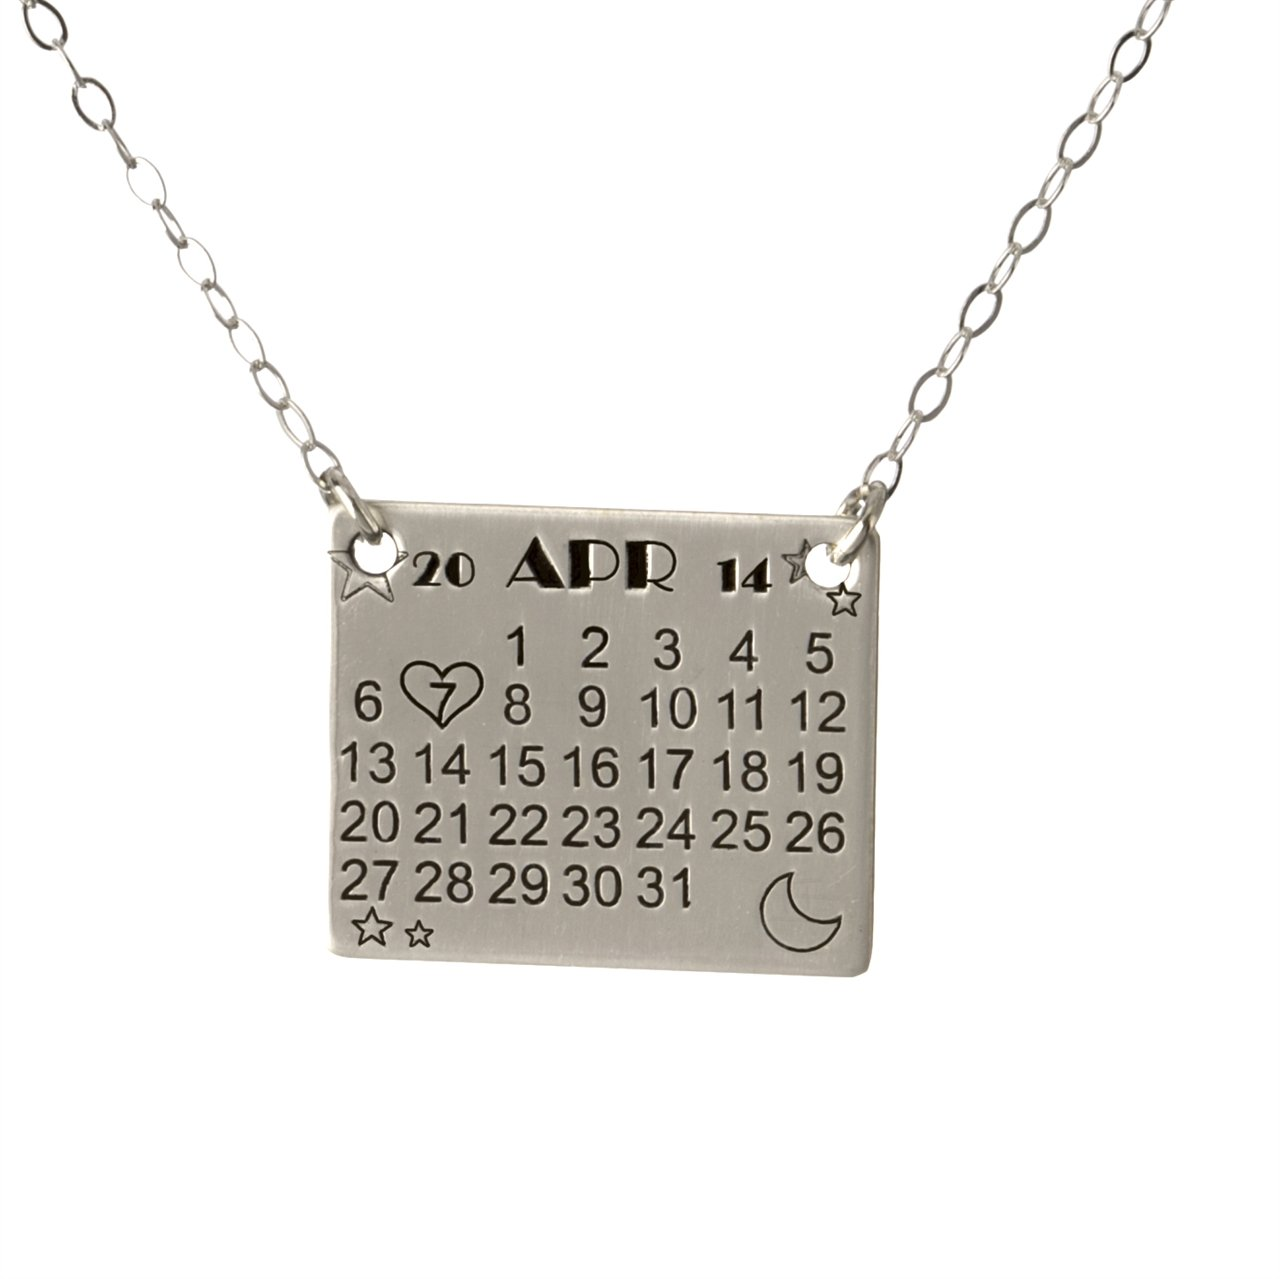 Special Date - Personalized Sterling Silver Calendar Charm Necklace Customize with the Special Date of your life. Includes Sterling Silver Cable Chain. Unique Gifts for Her, Wife, Girlfriend